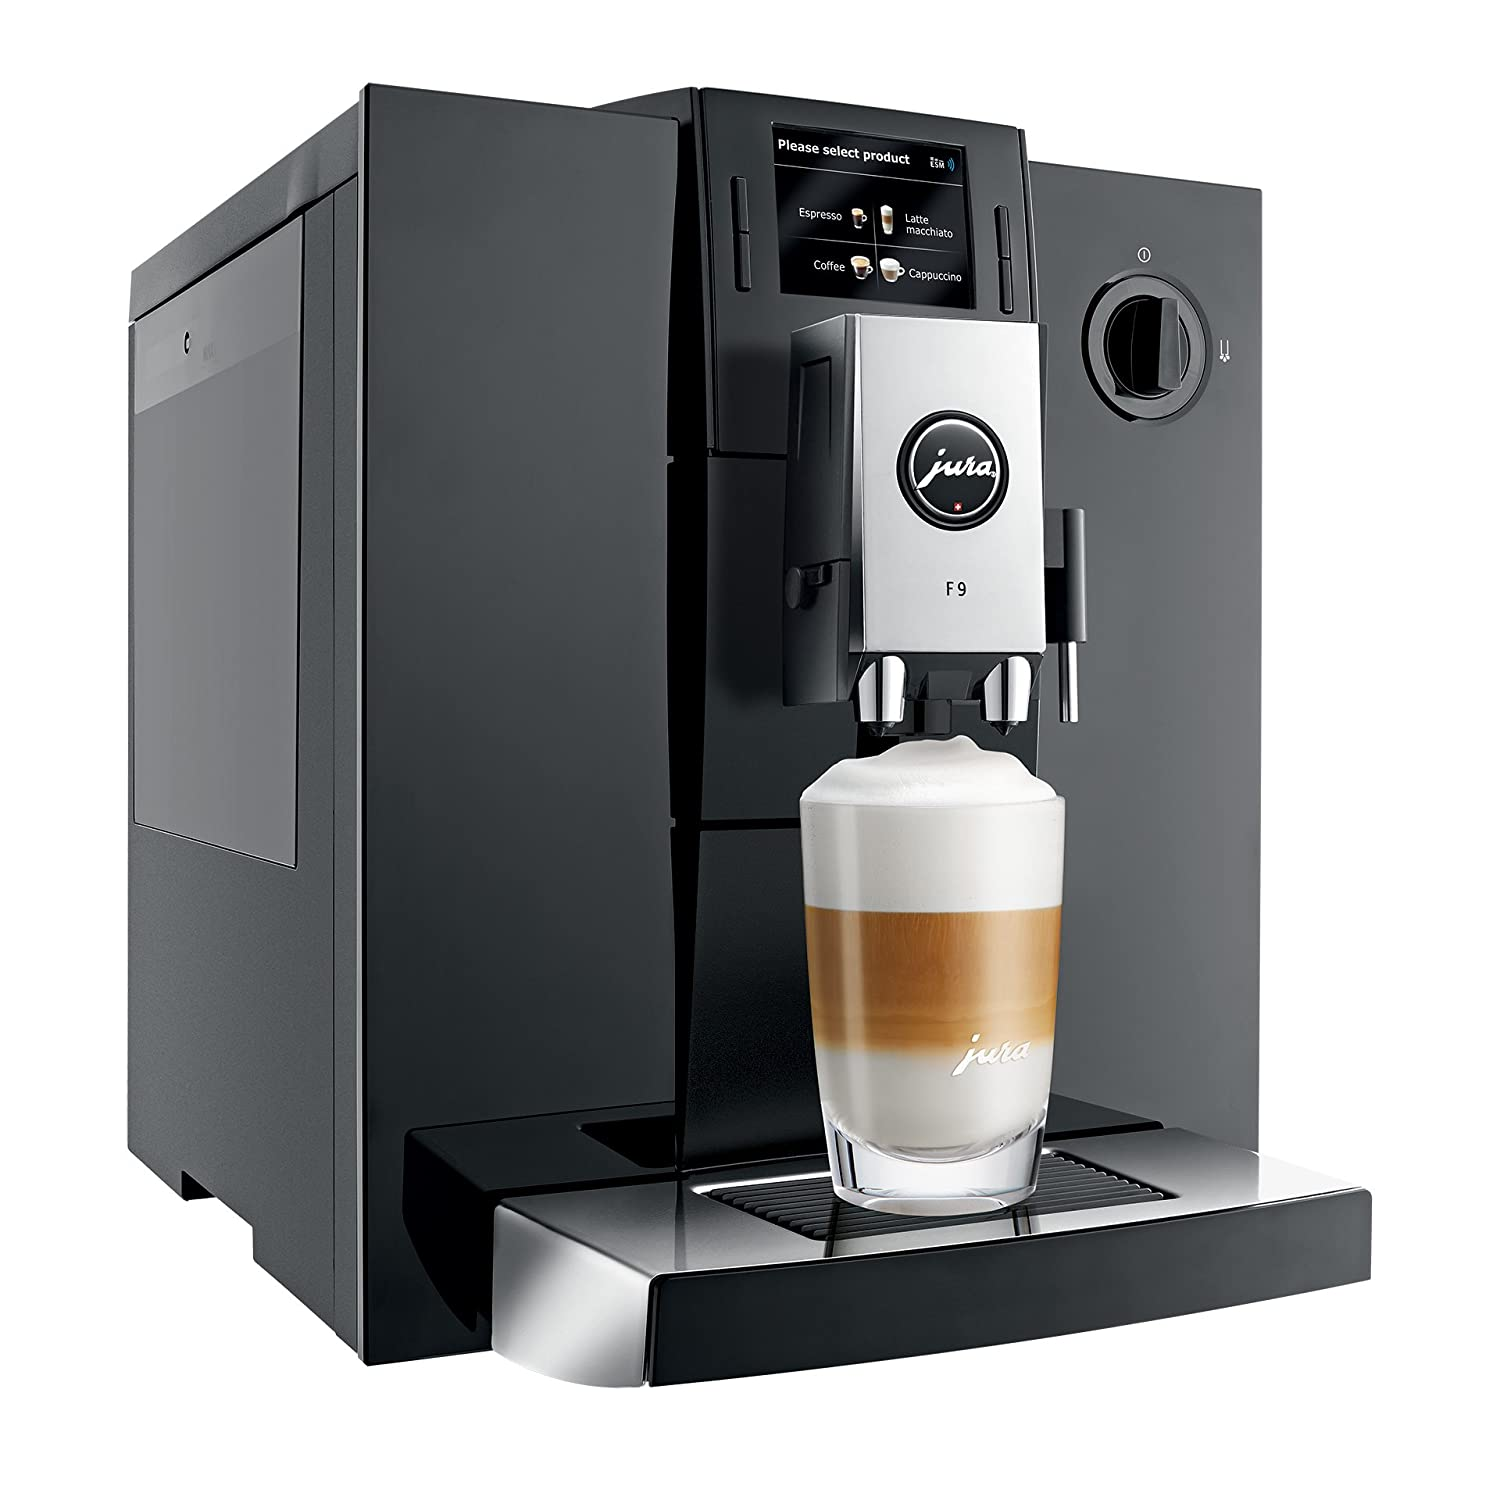 JURA 15127 F9 Automatic Bean-to-Cup Coffee Machine, Piano Black:  Amazon.co.uk: Kitchen & Home